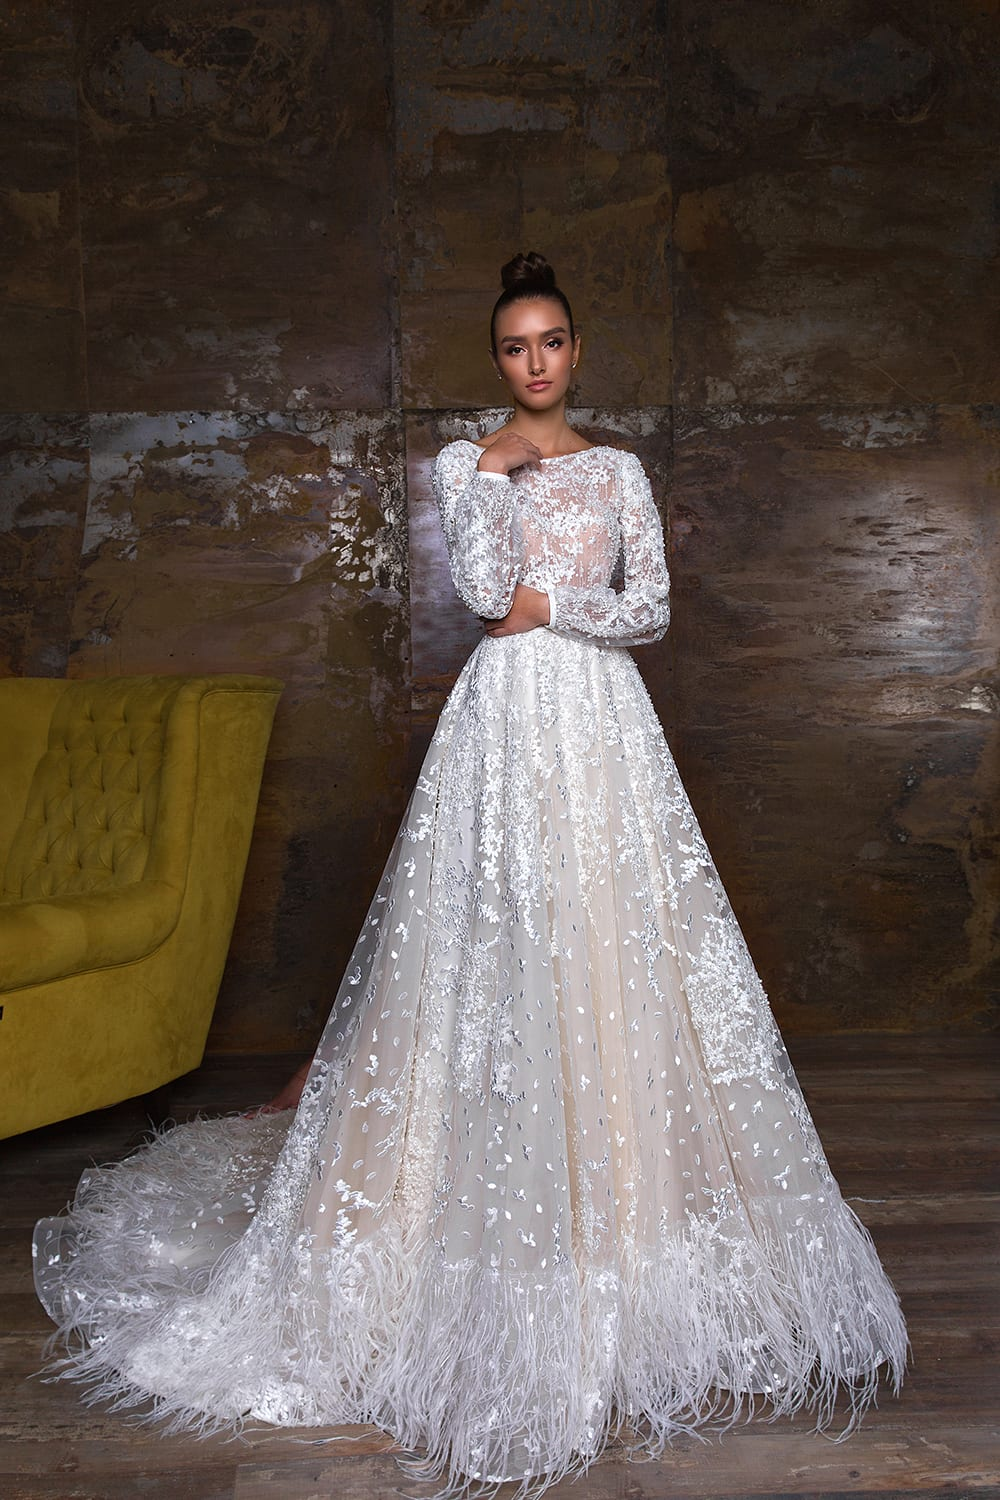 Cool Wedding Gown Ideas For Women